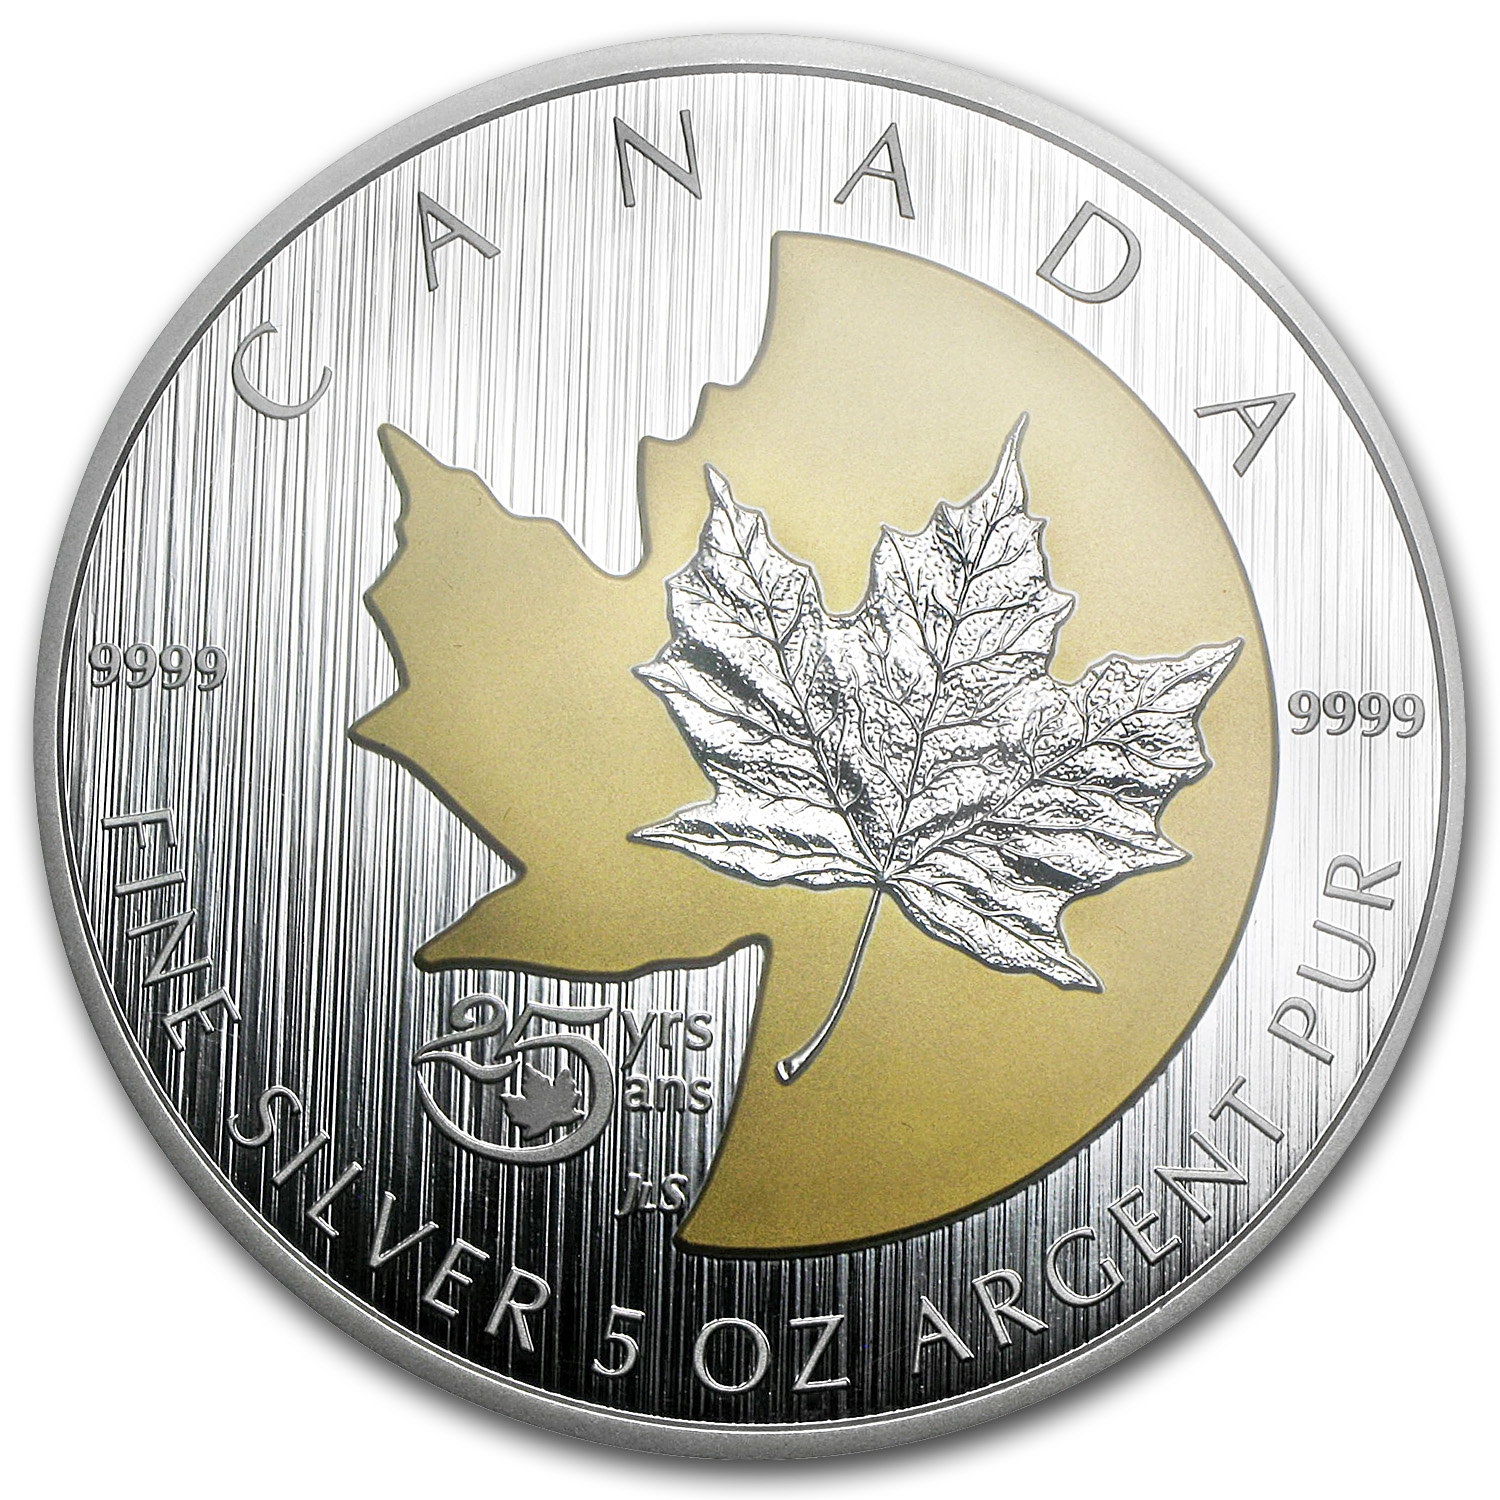 2013 5 oz Silver Gilded Canadian- 25th Anniv. of the Silver Maple